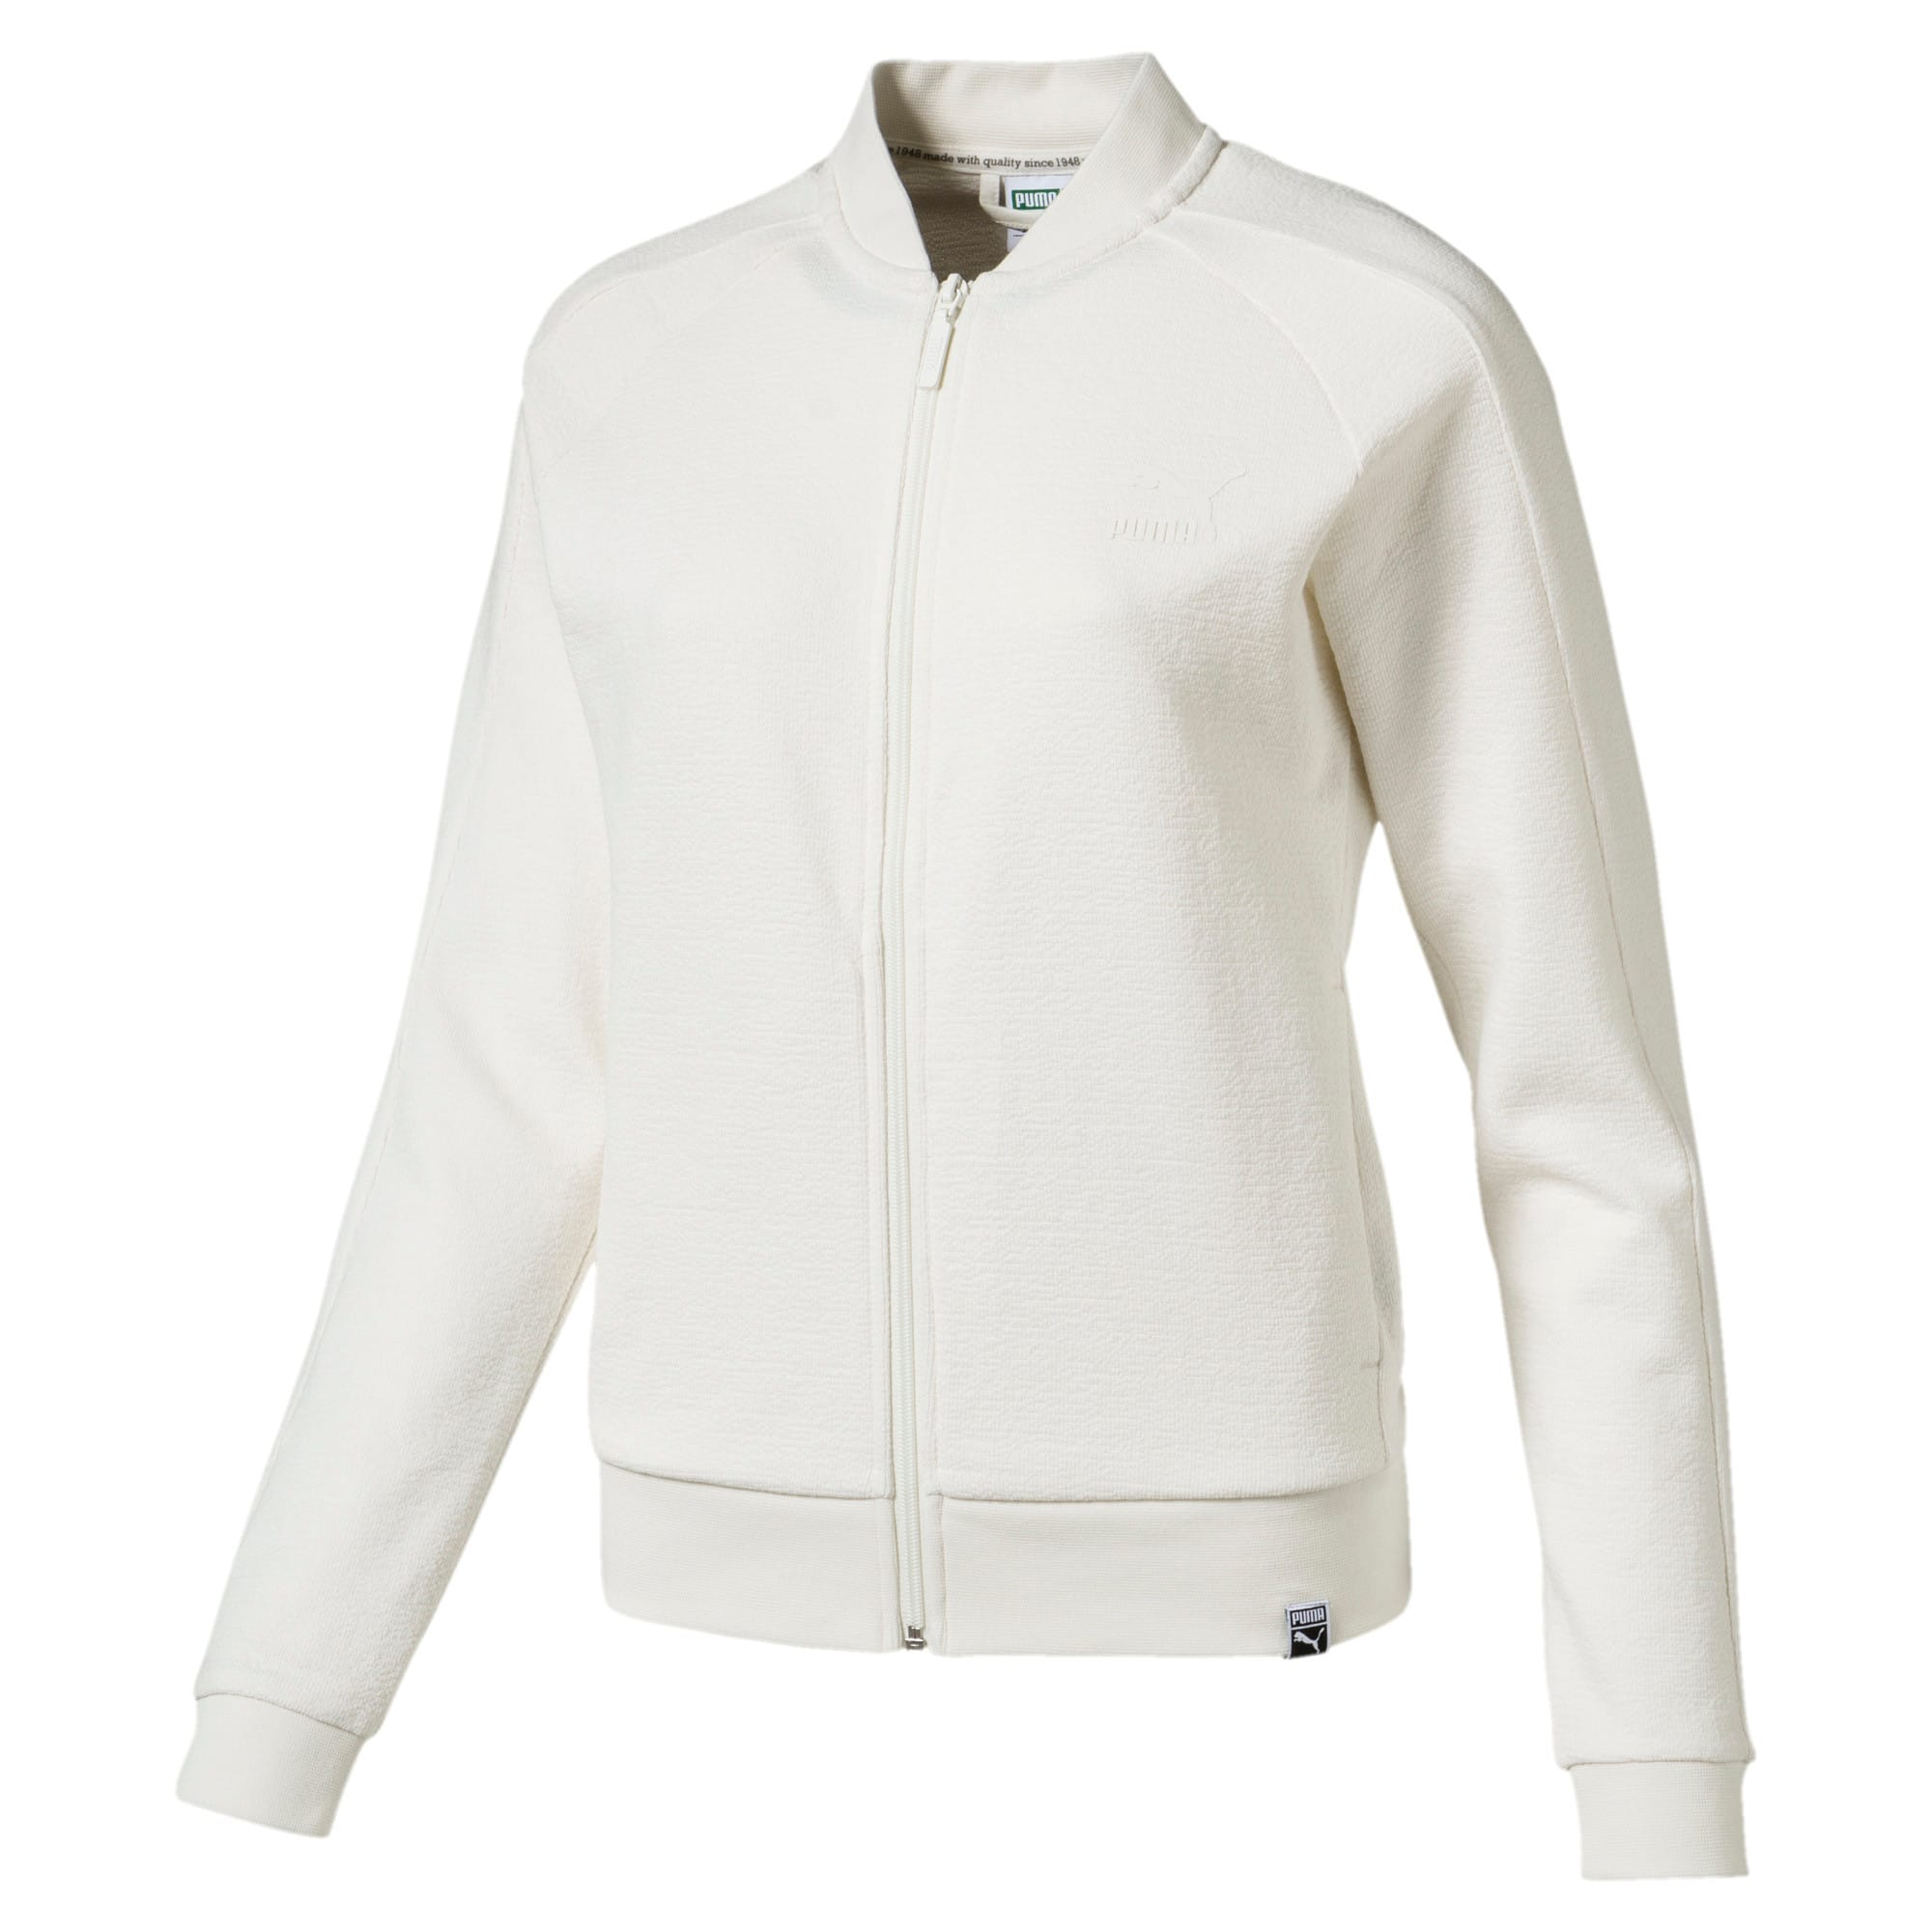 Thumbnail 1 of Classics Women's Structured Archive T7 Track Jacket, Marshmallow, medium-IND